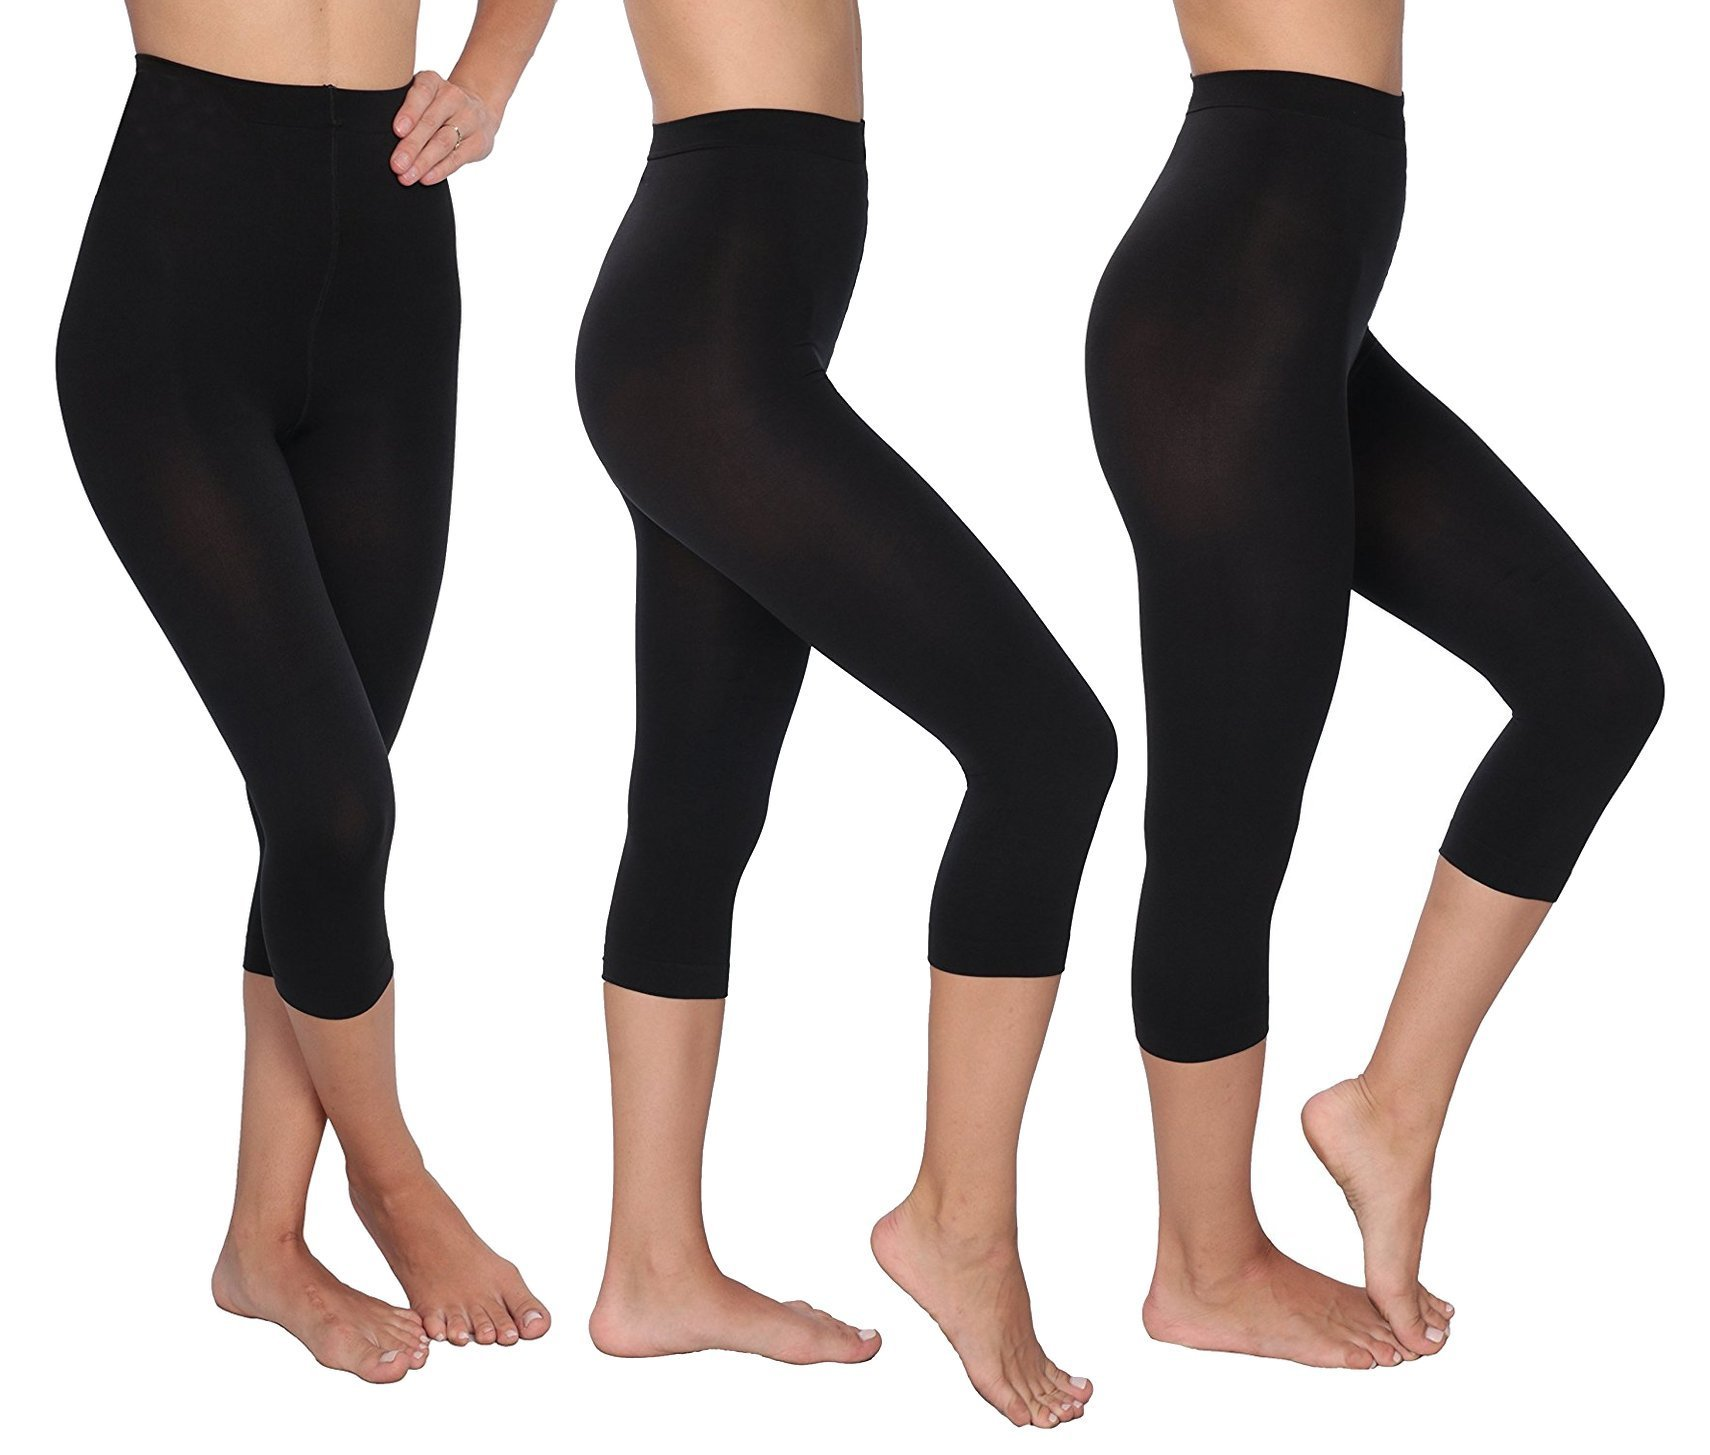 L'eggs Control Top Capri Footless Tights, 3 Pack, Black, Large